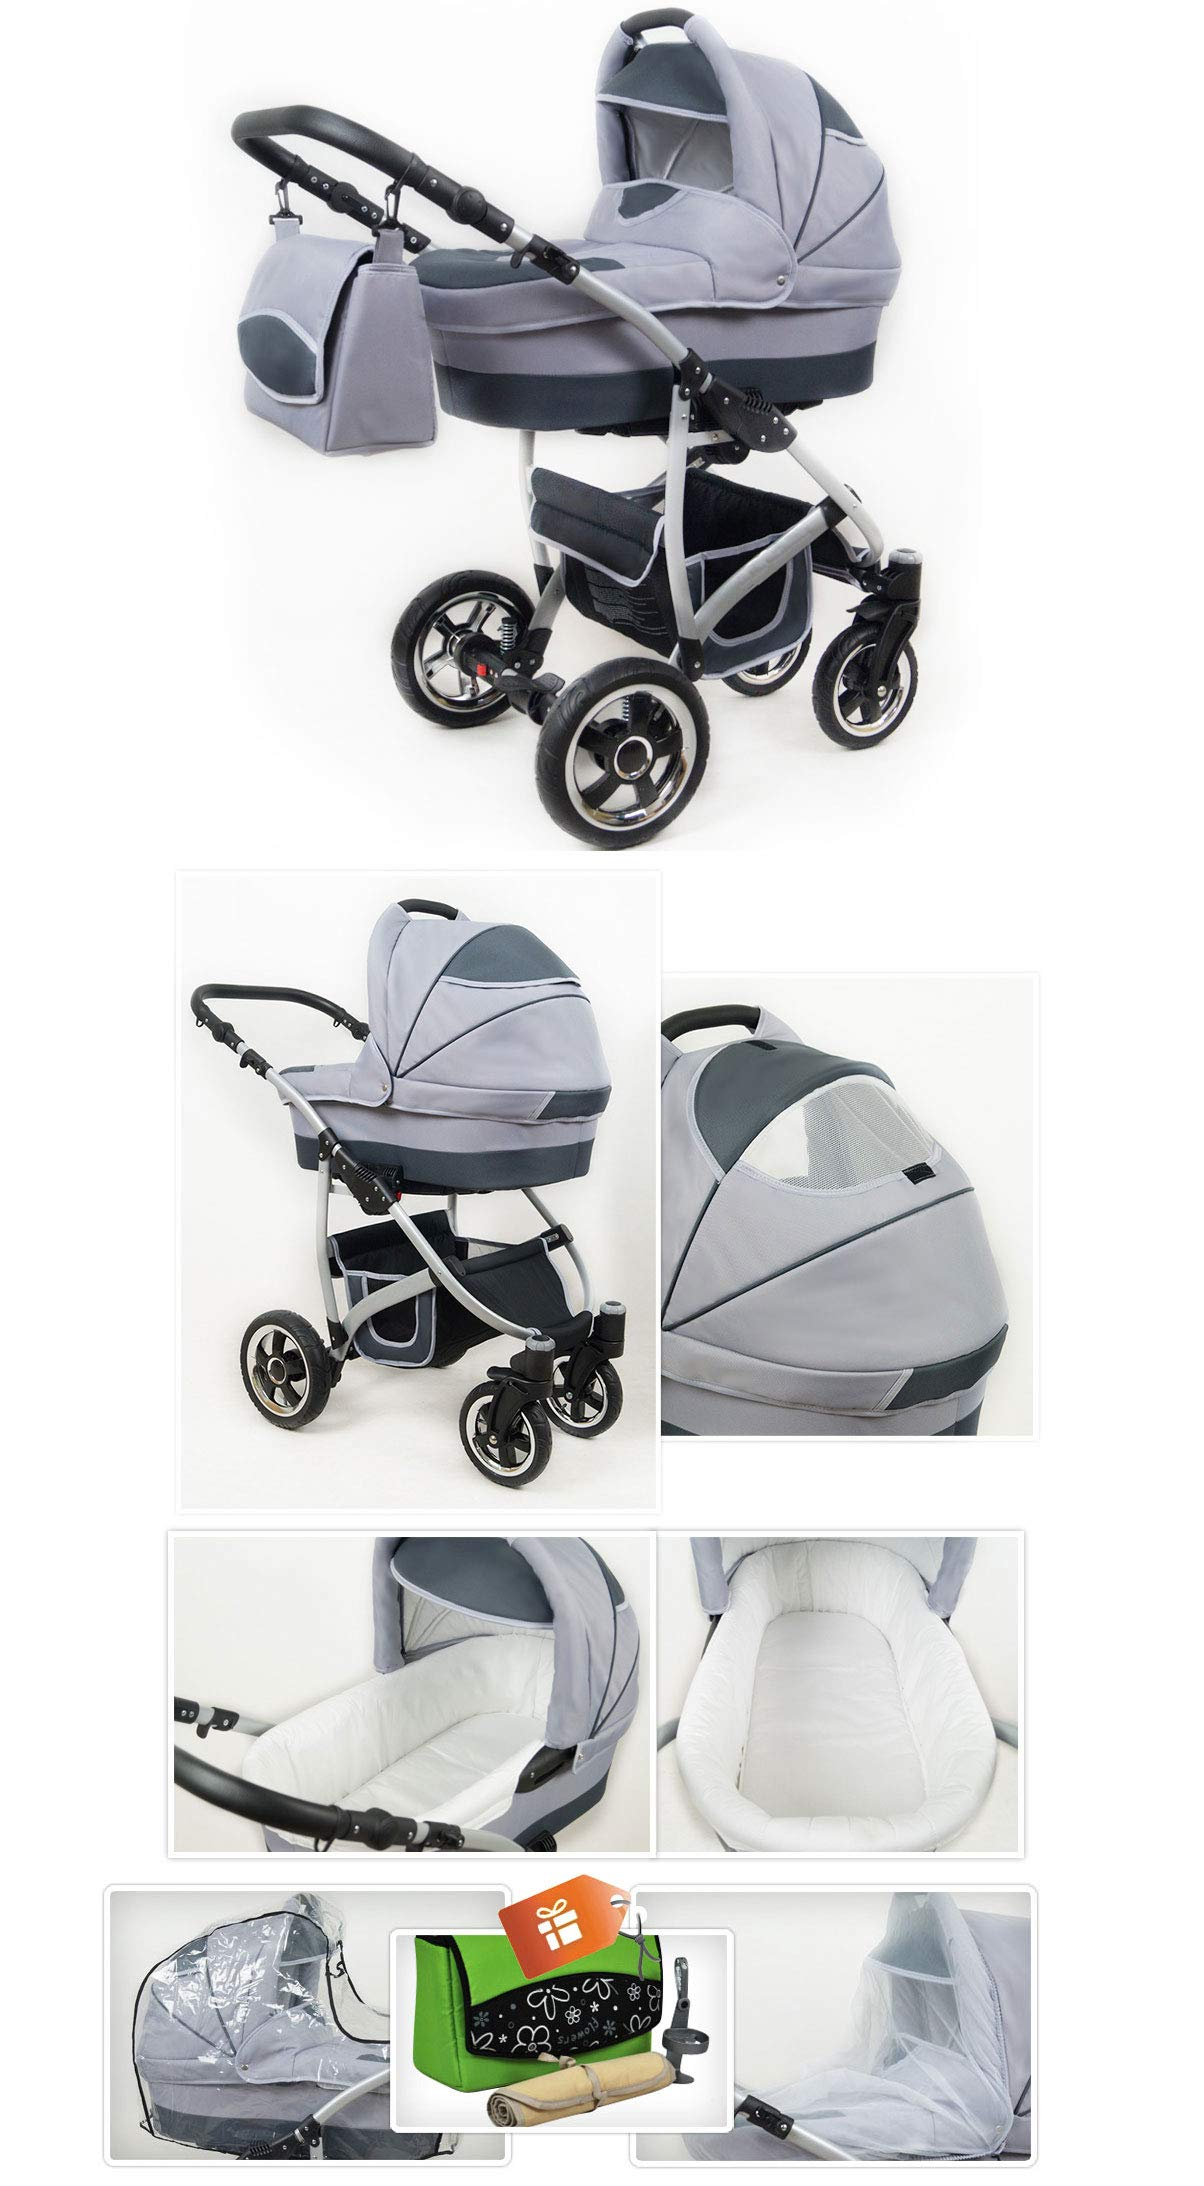 Lux4Kids 3 in 1 Combi pram Pushchair Stroller Complete Set with car seat Isofix Larmax Black & Pink 4in1 car seat +Isofix Lux4Kids Lux4Kids 4in1 or 3in1 or 2in1 pushchair. You have the choice whether you need a car seat (baby seat certified according to ECE R 44/04 or not). Of course, the Pram is stabil, safe and durable Certificate EN 1888:2004 Of course, the baby Basket has a rocking function when it is removed from the pram. The push handle adapts to your size and fits for everyone 3